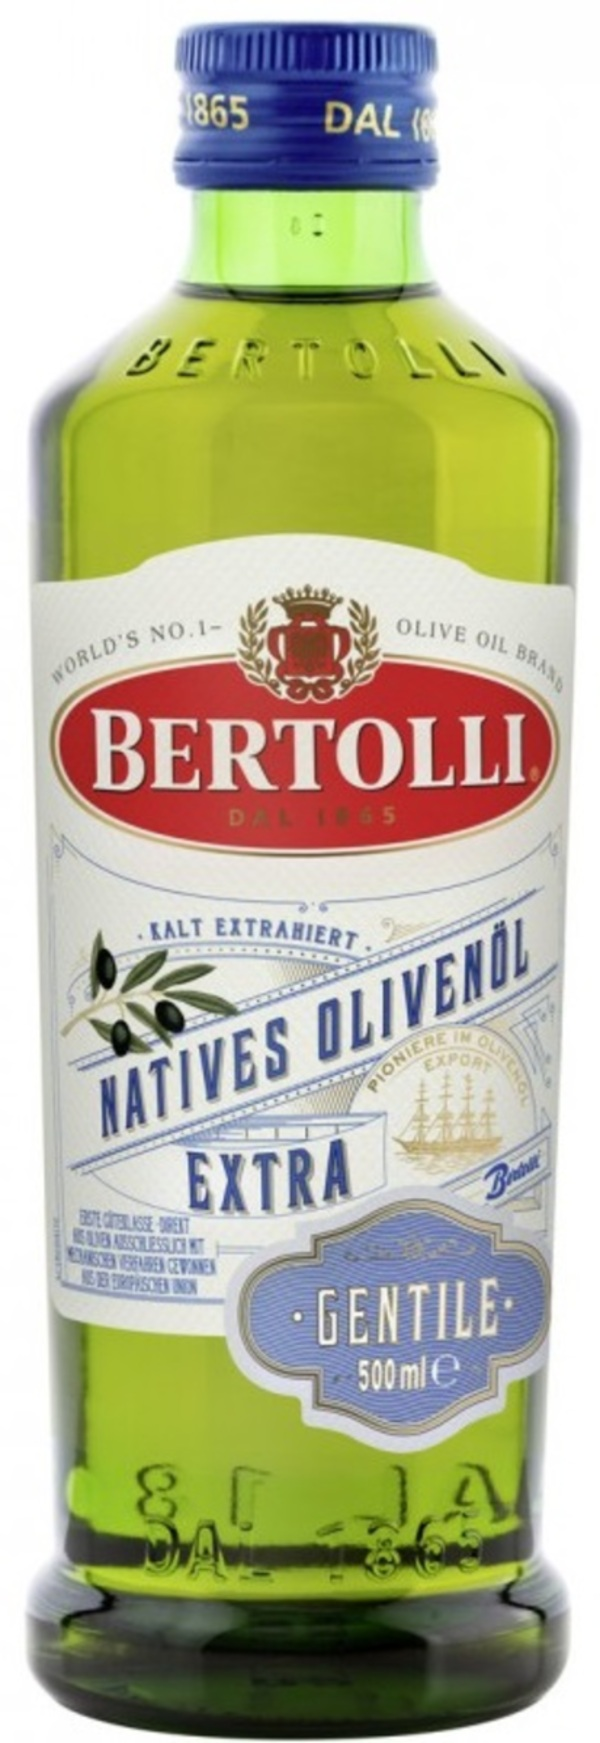 Bertolli Natives Olivenöl Extra Gentile 500 ml